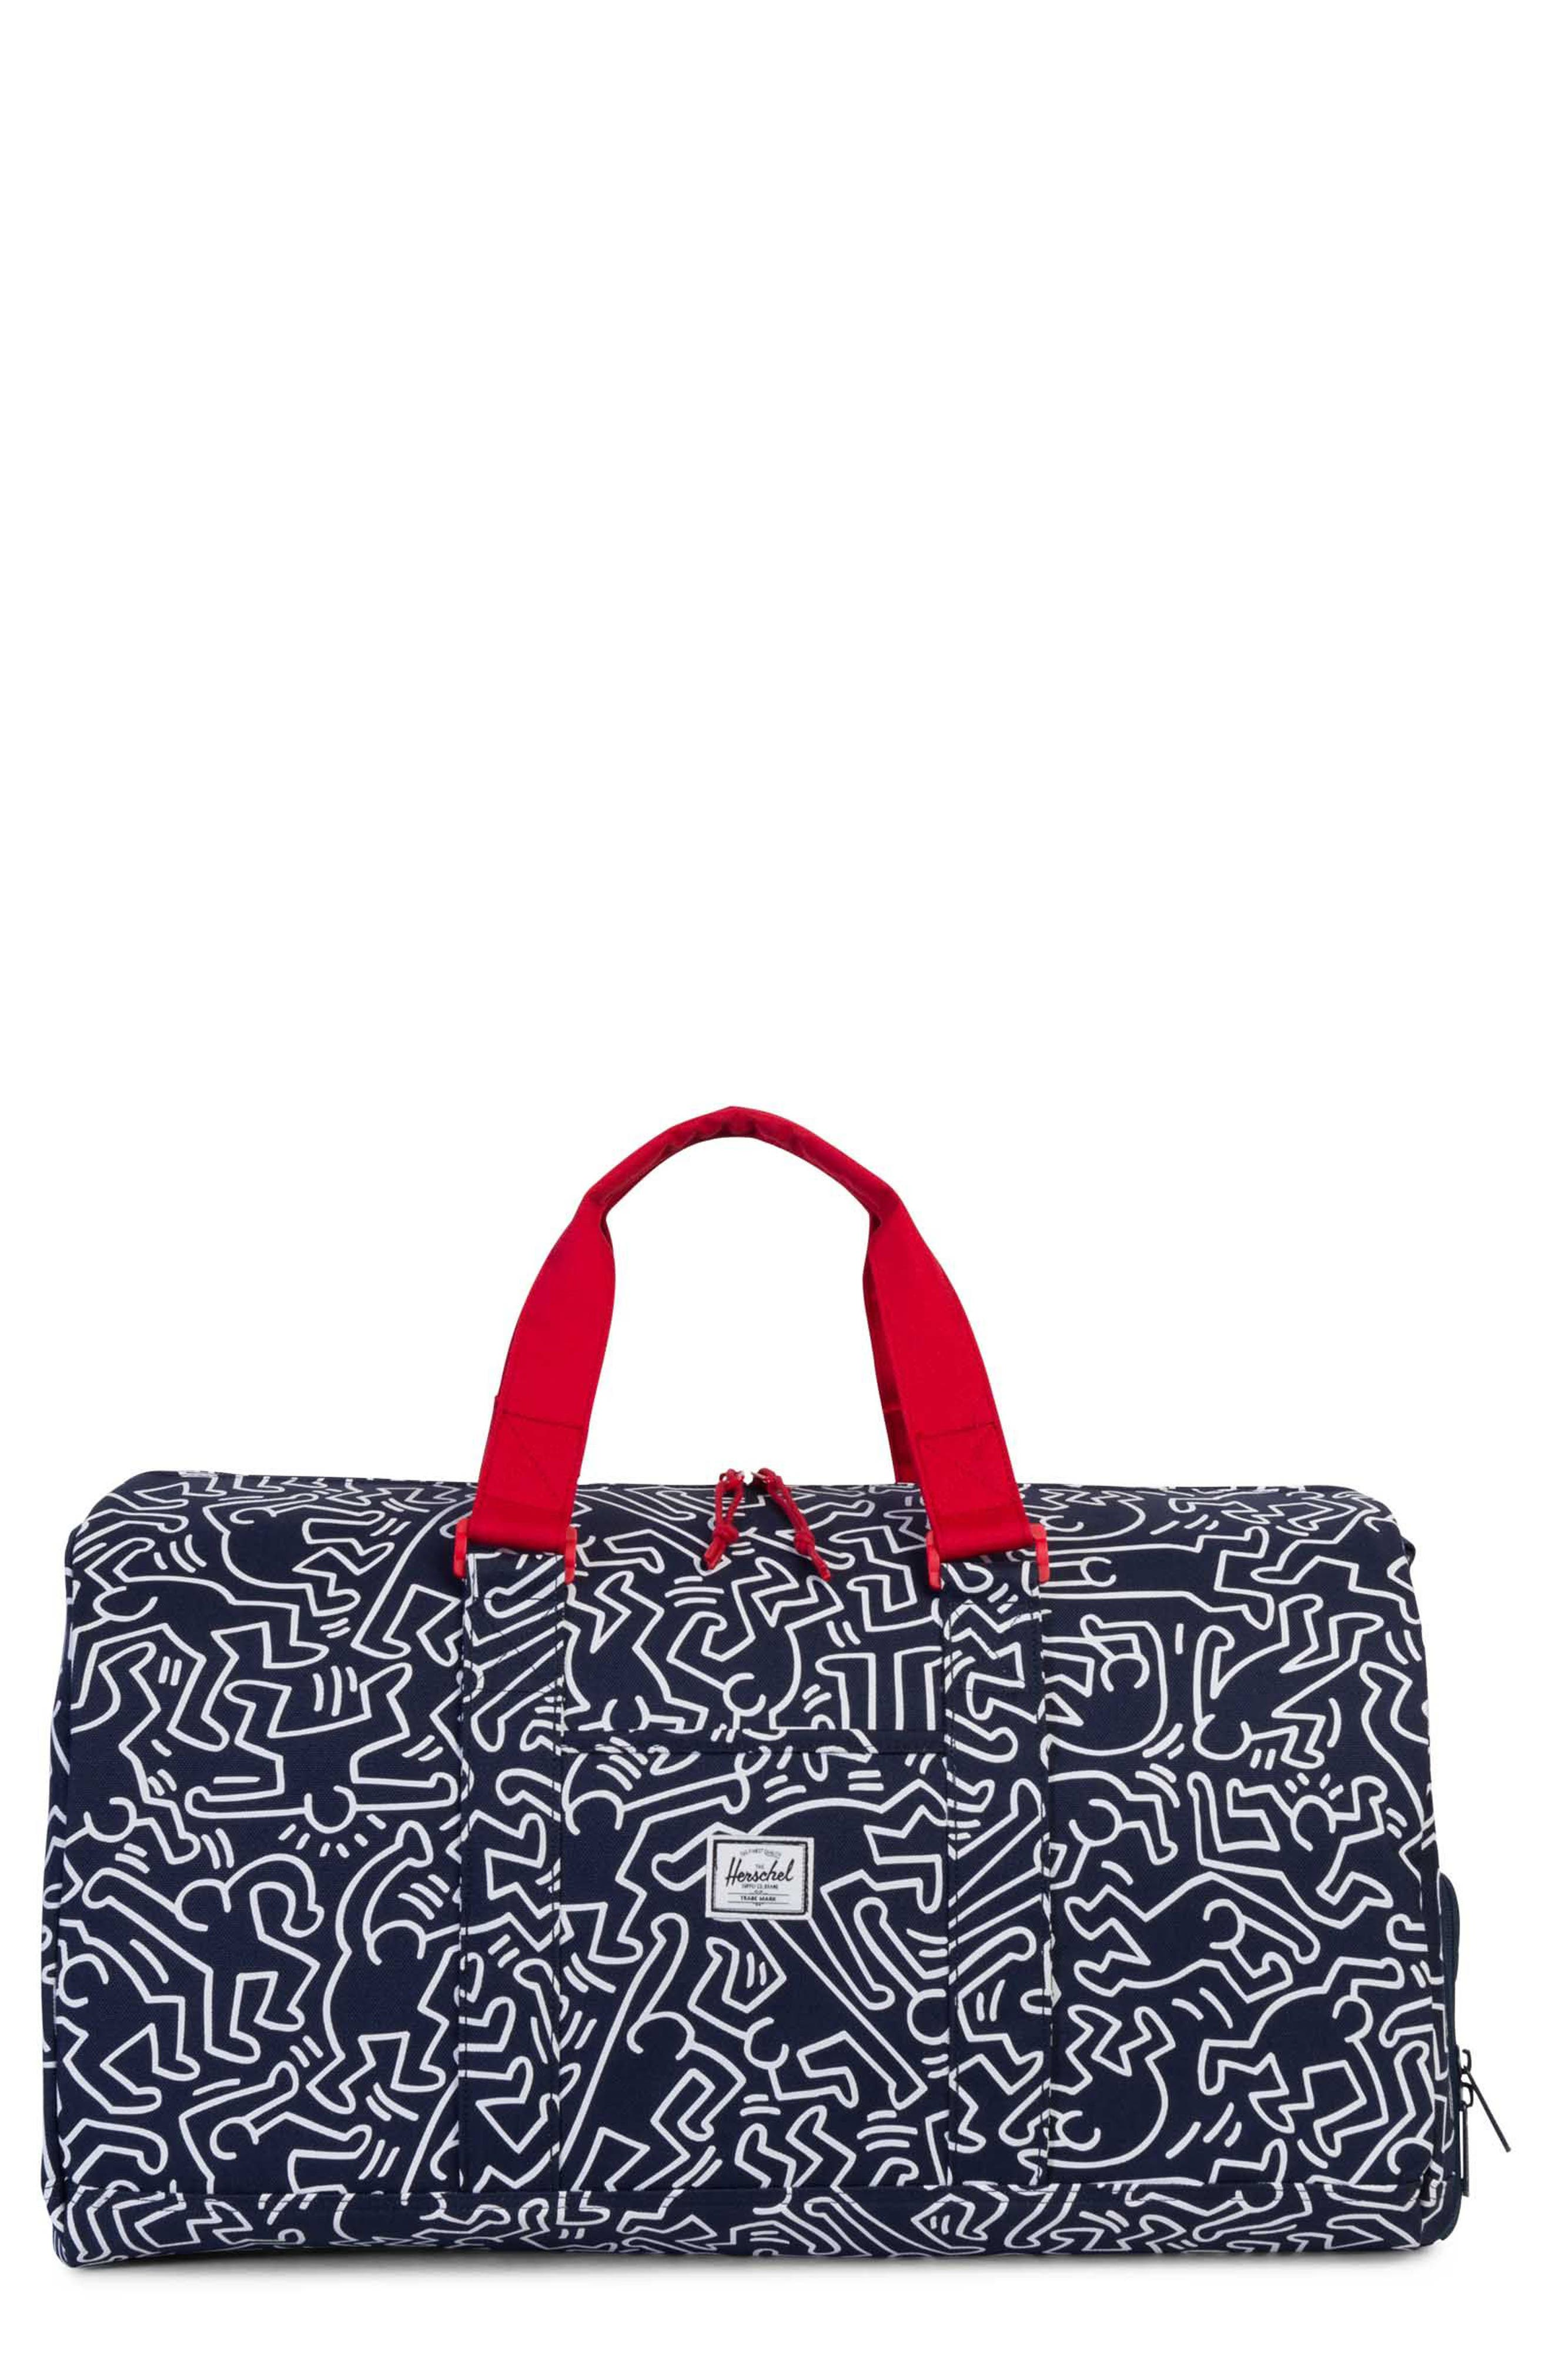 Novel x Keith Haring Duffel Bag,                             Main thumbnail 1, color,                             Peacoat Keith Haring